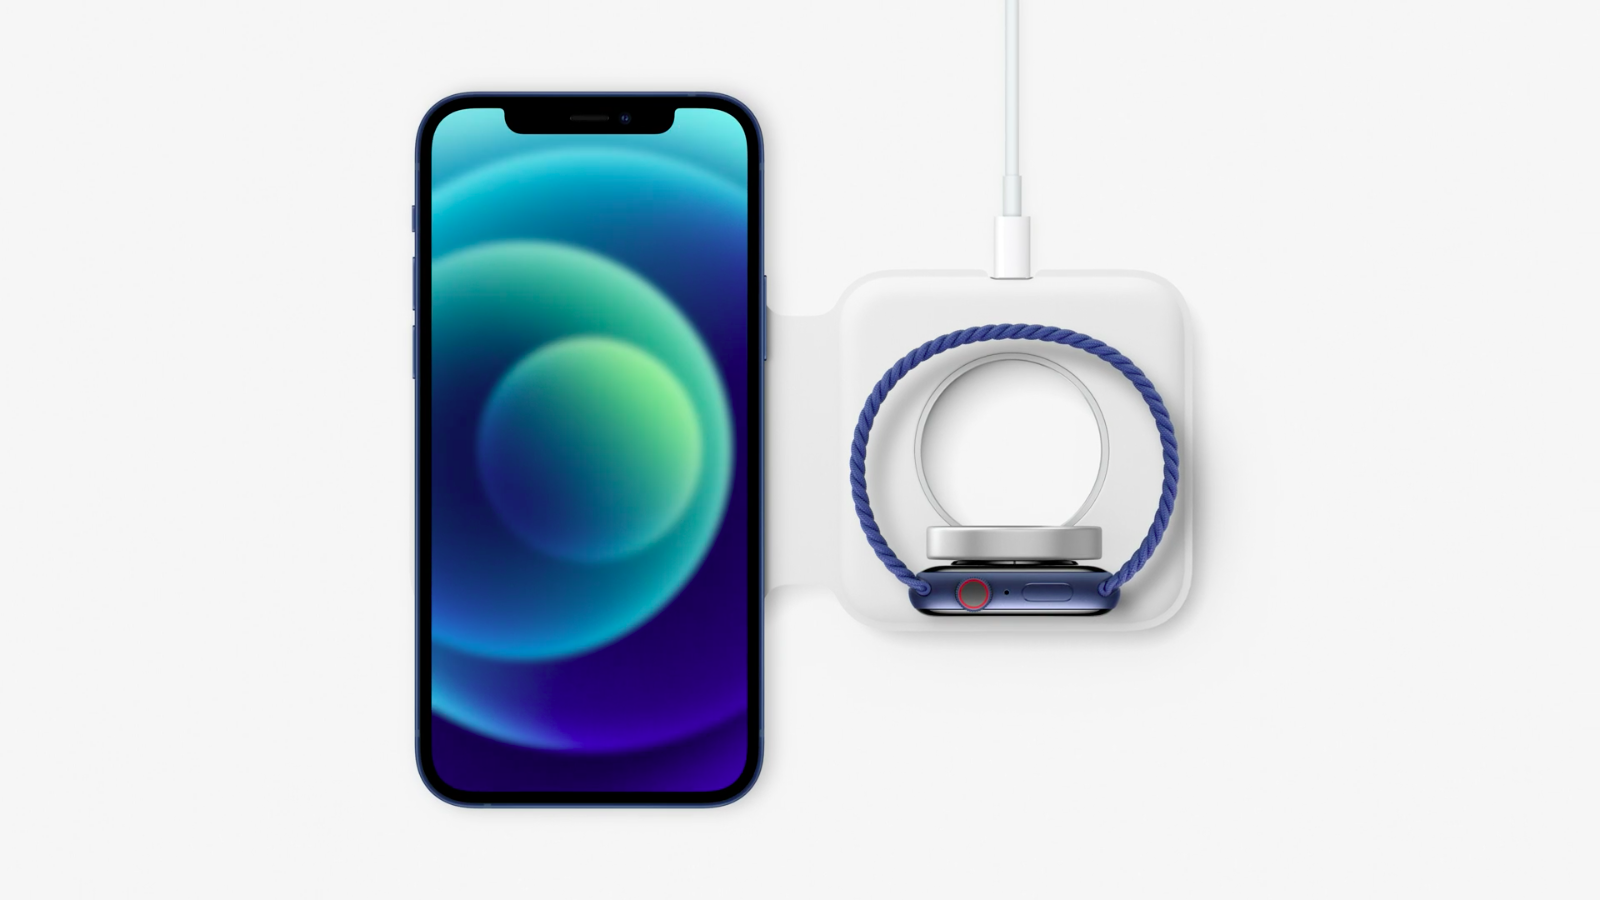 iPhone 12 MagSafe wireless charging: Everything you need to know